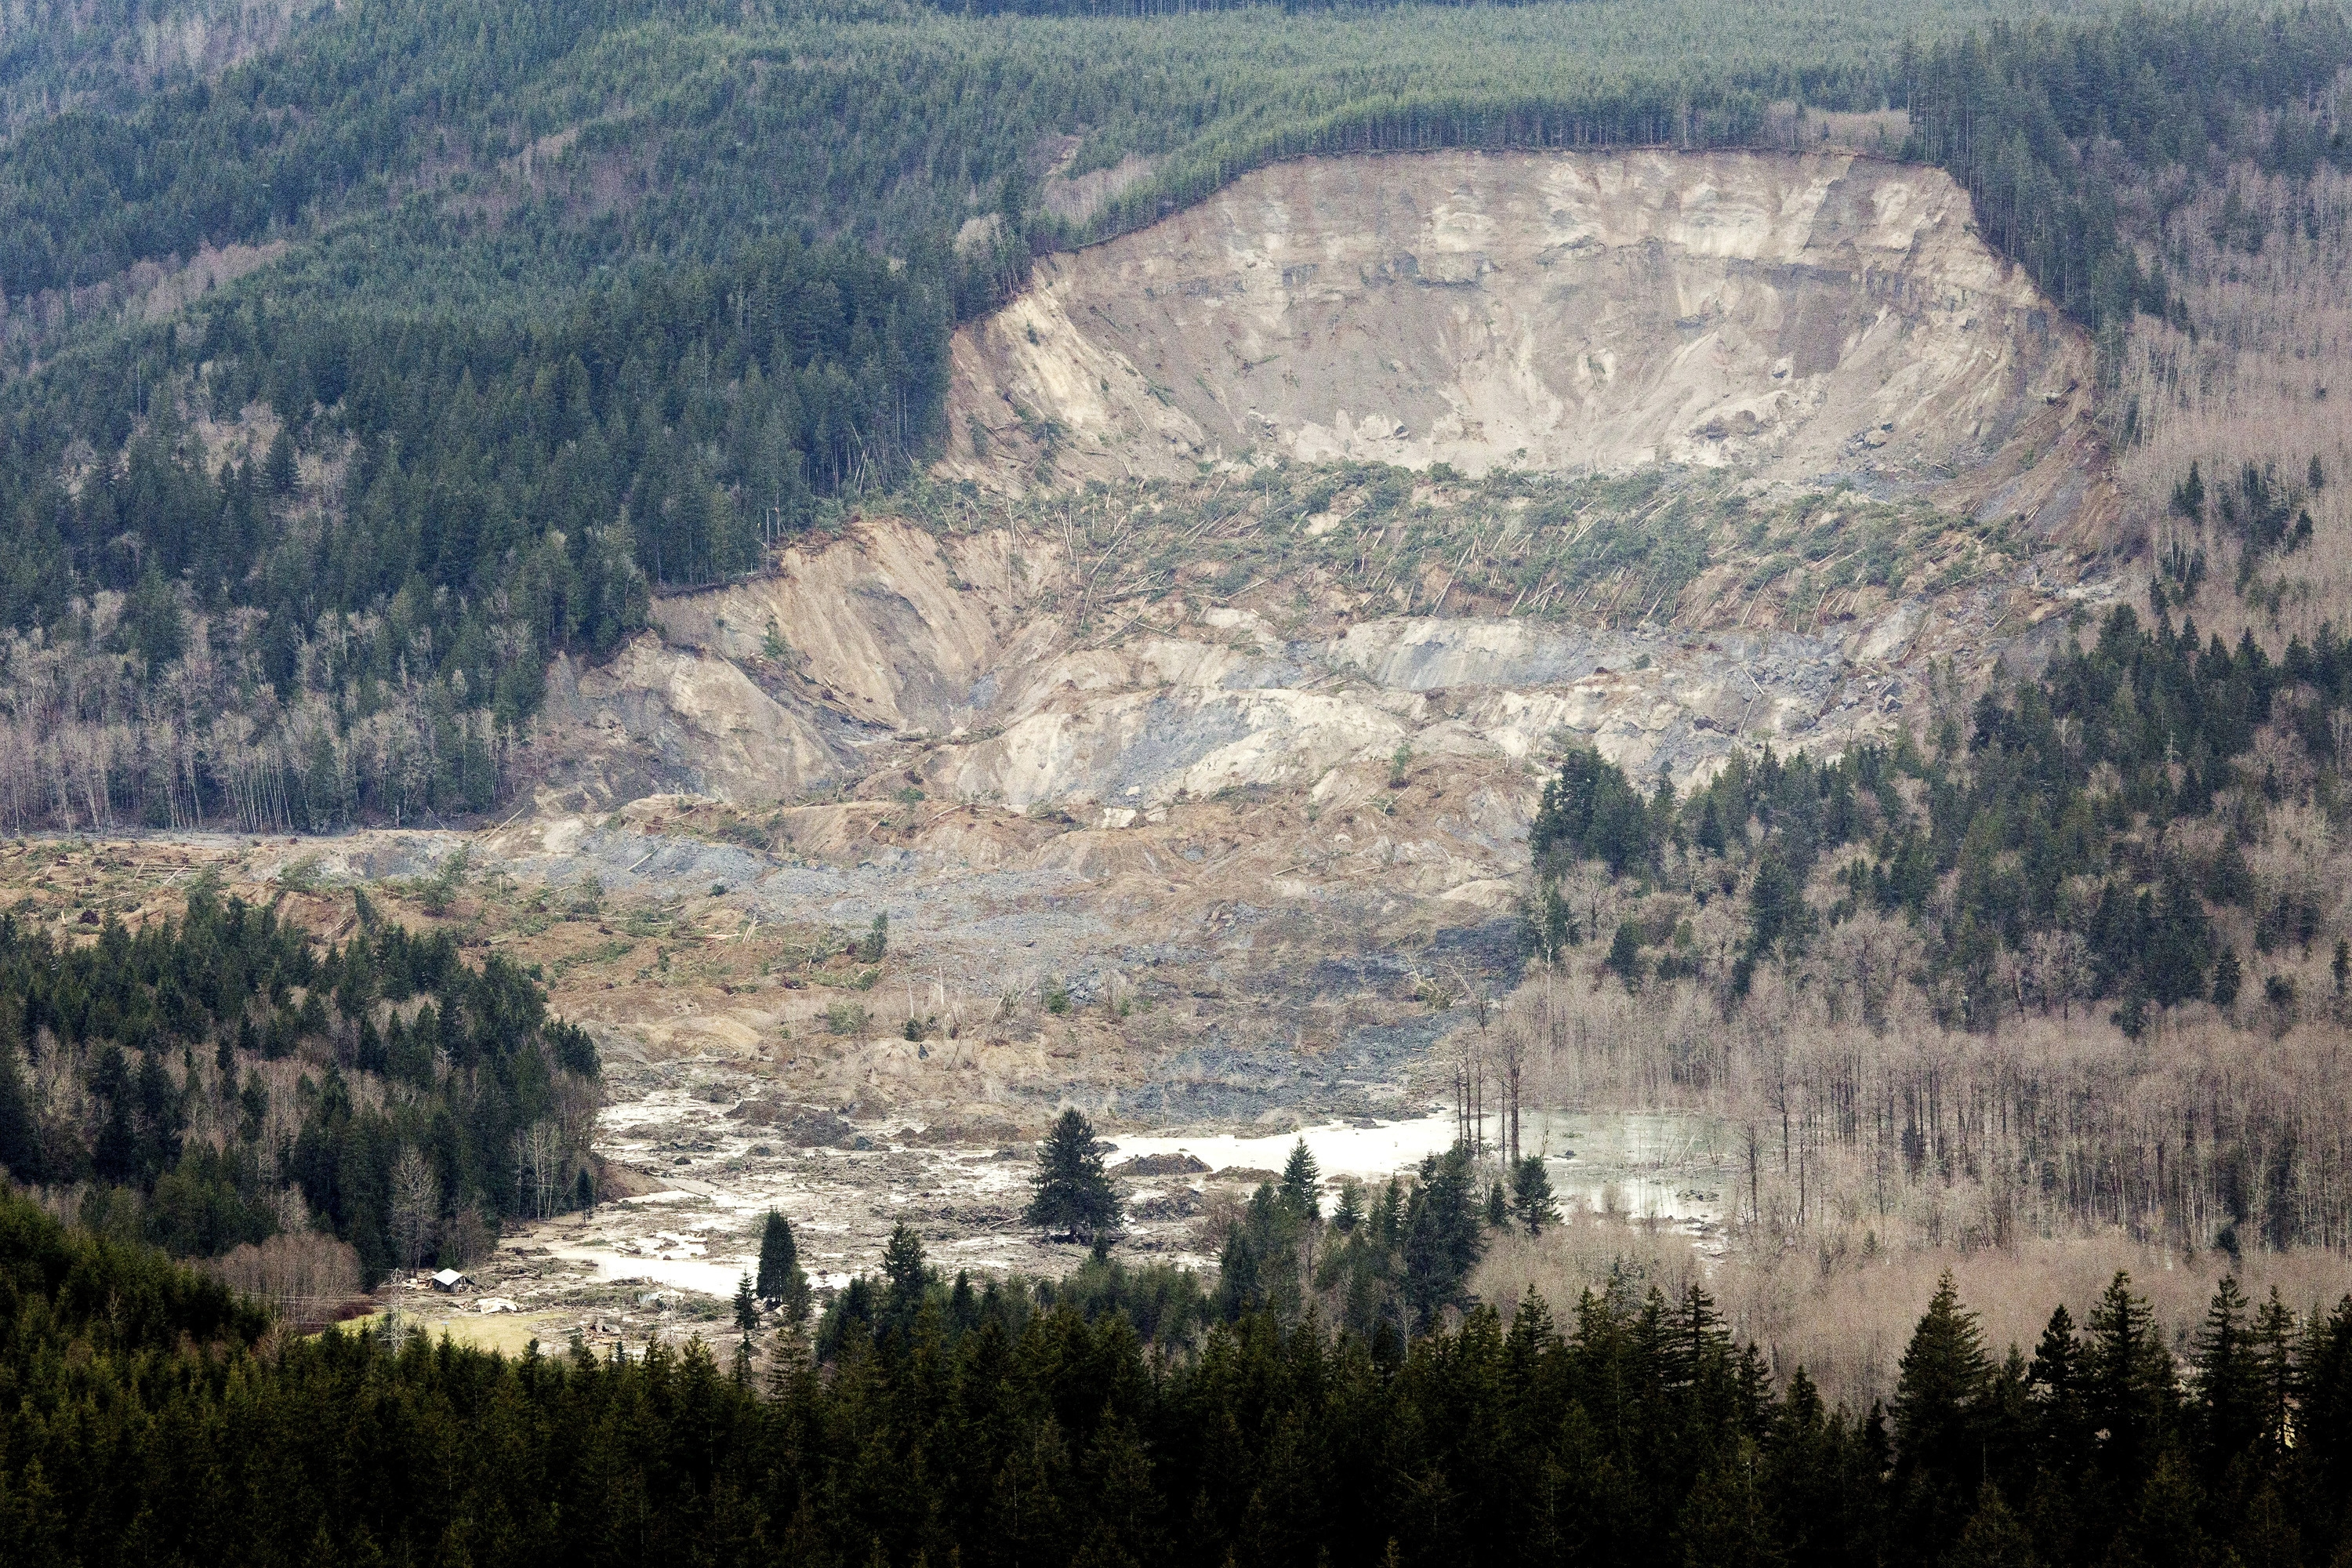 A side of this hill disappeared in Saturday's fatal mudslide between towns of Darrington and Arlington, Wash. Two neighborhoods on the Stillaguamish River were destroyed.